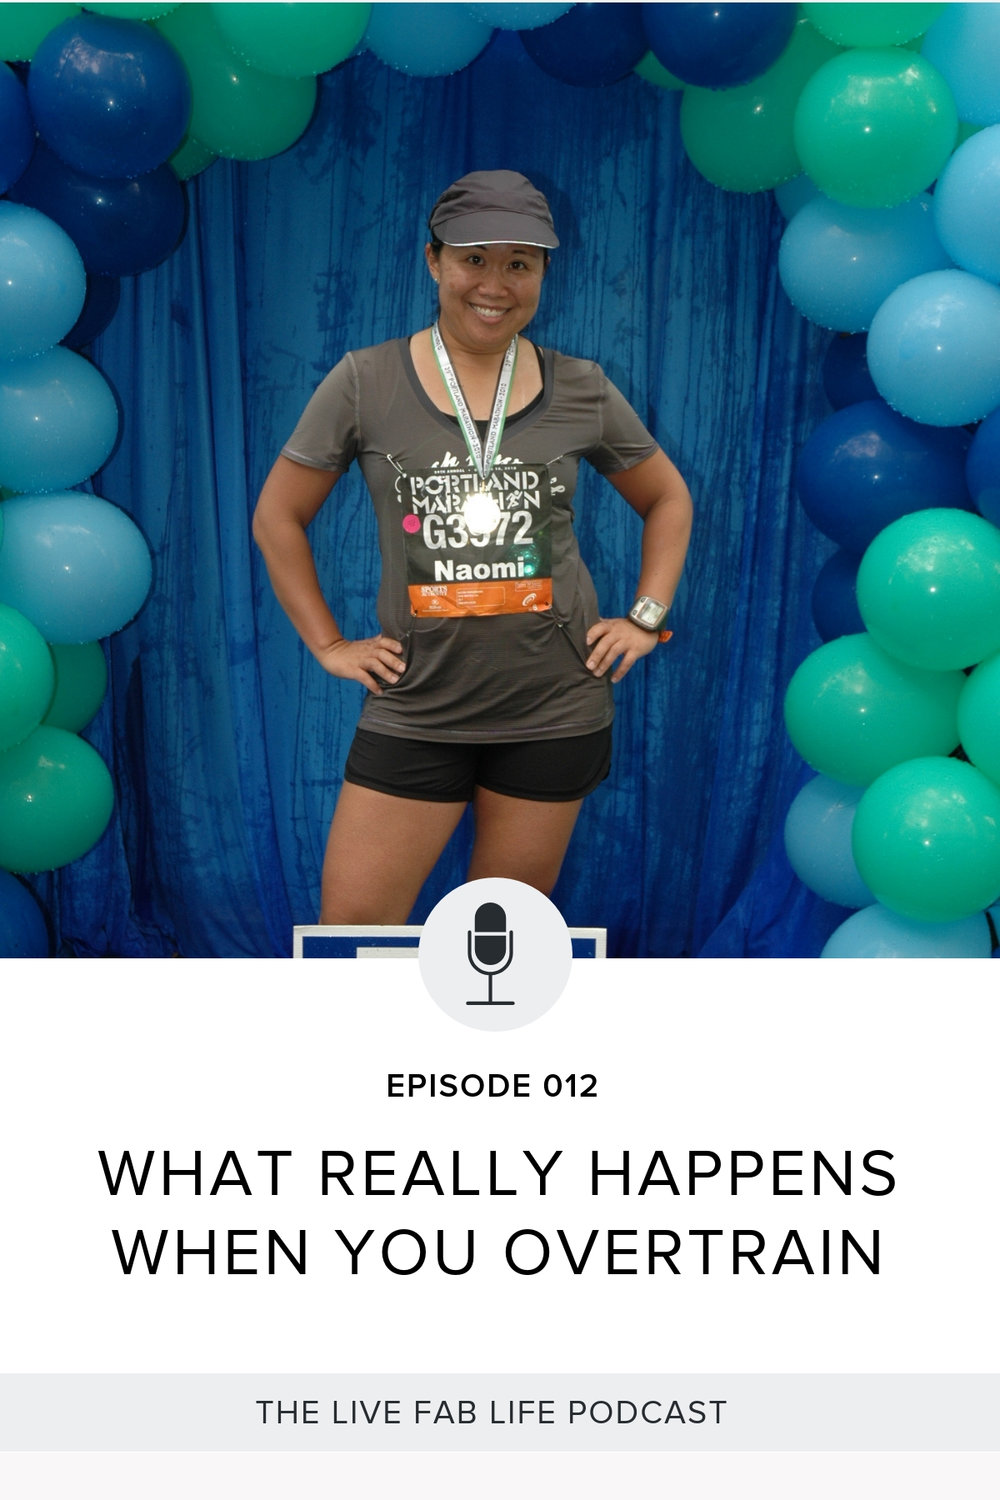 Episode 012: What Really Happens When You Overtrain